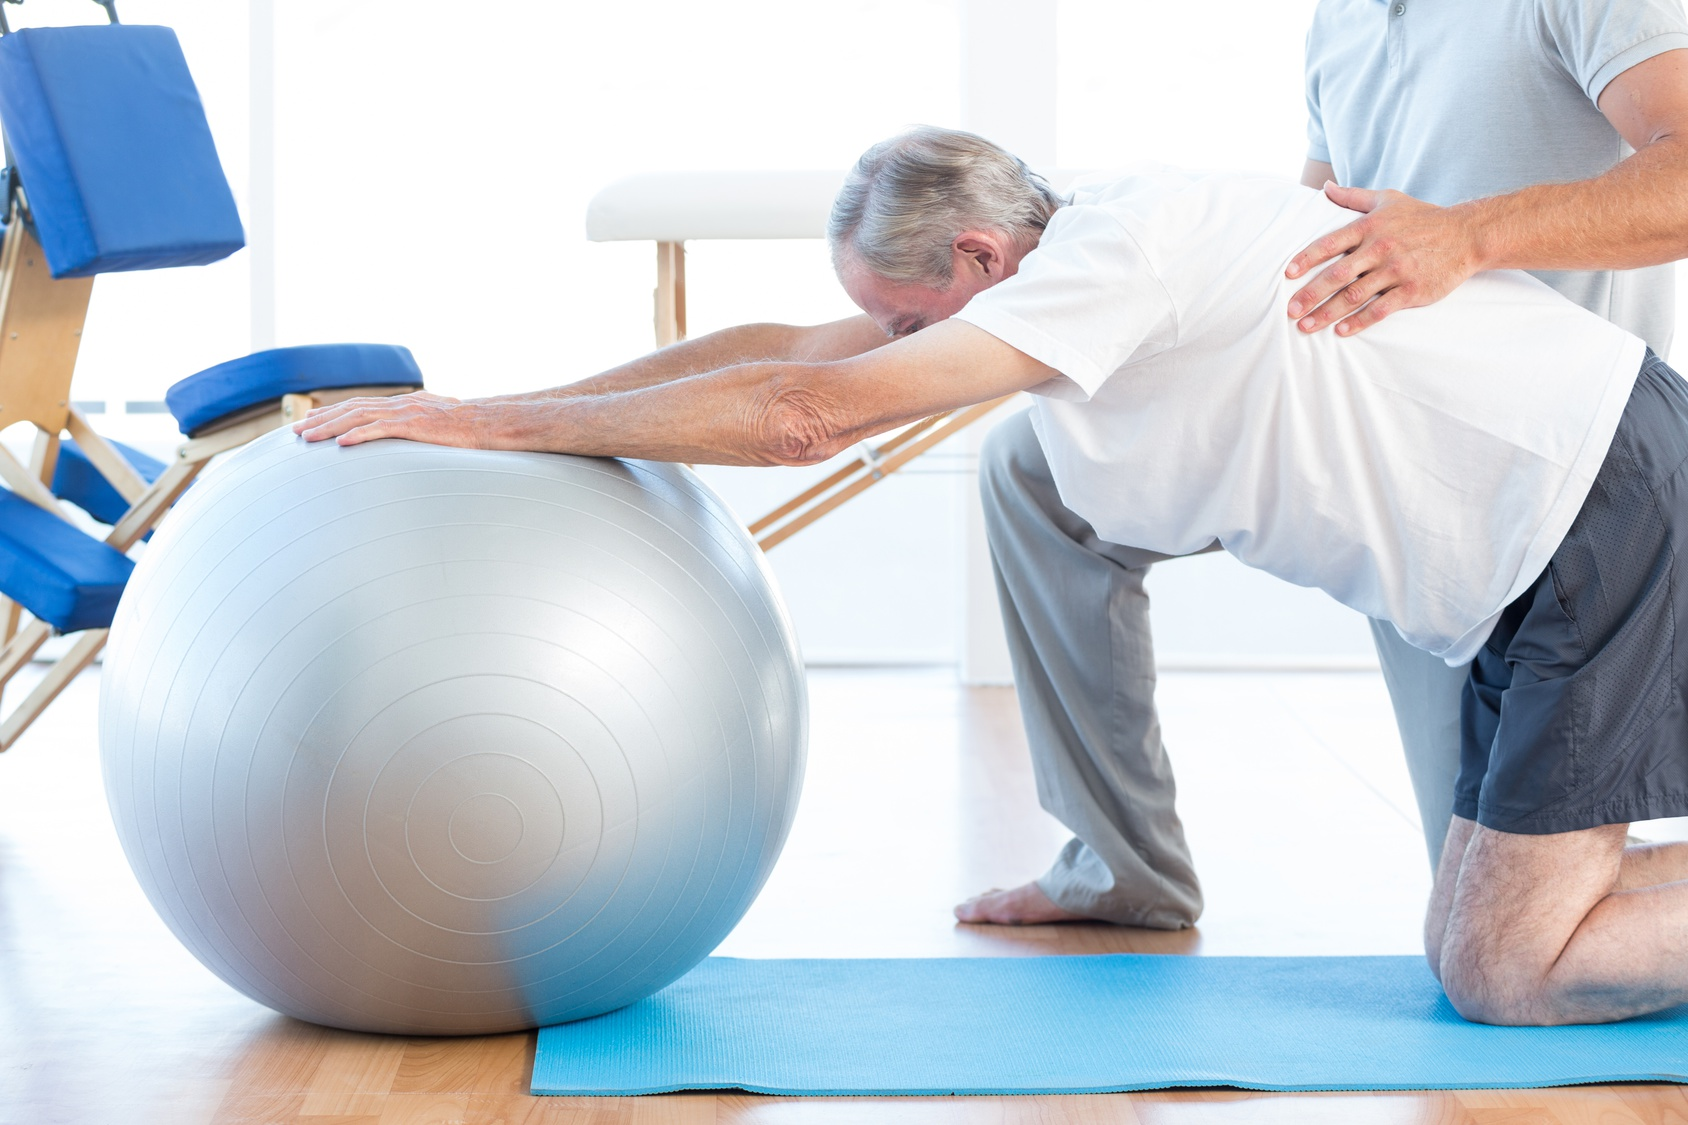 Physiotherapist helping man with exercise ball